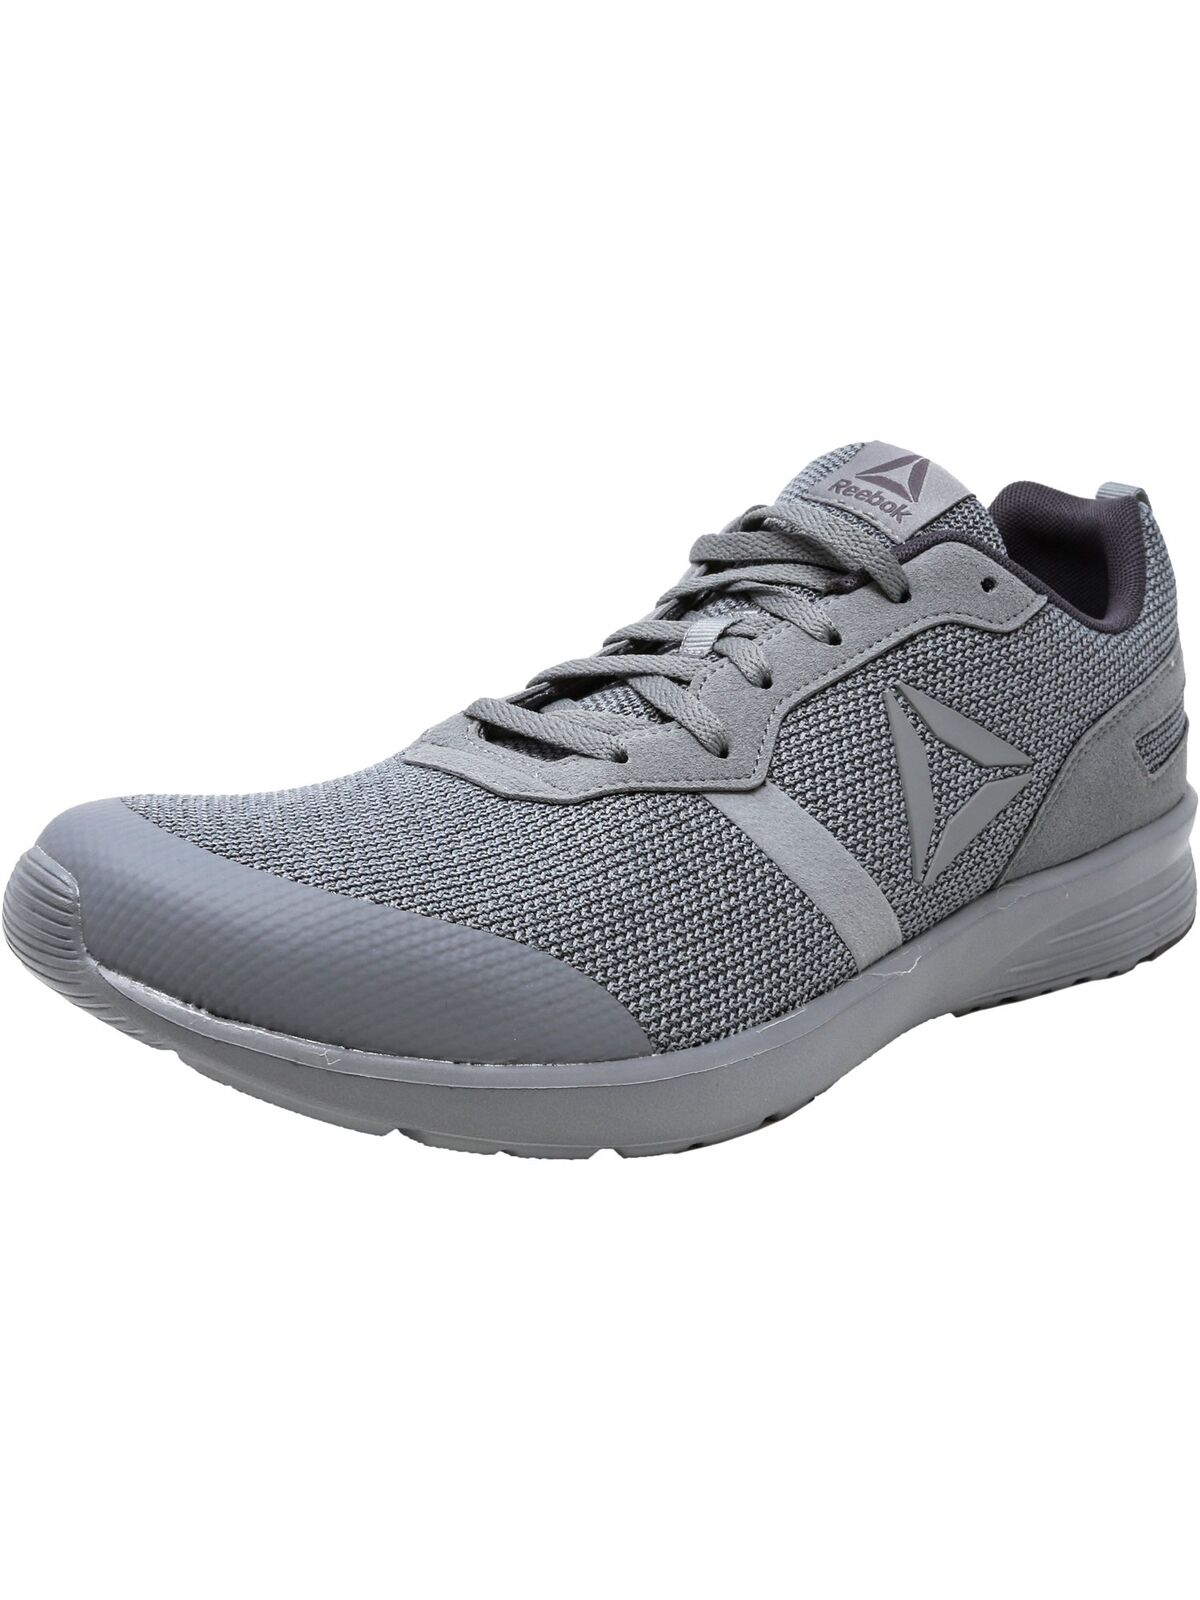 Reebok Men's Foster Flyer Ankle-High Running shoes